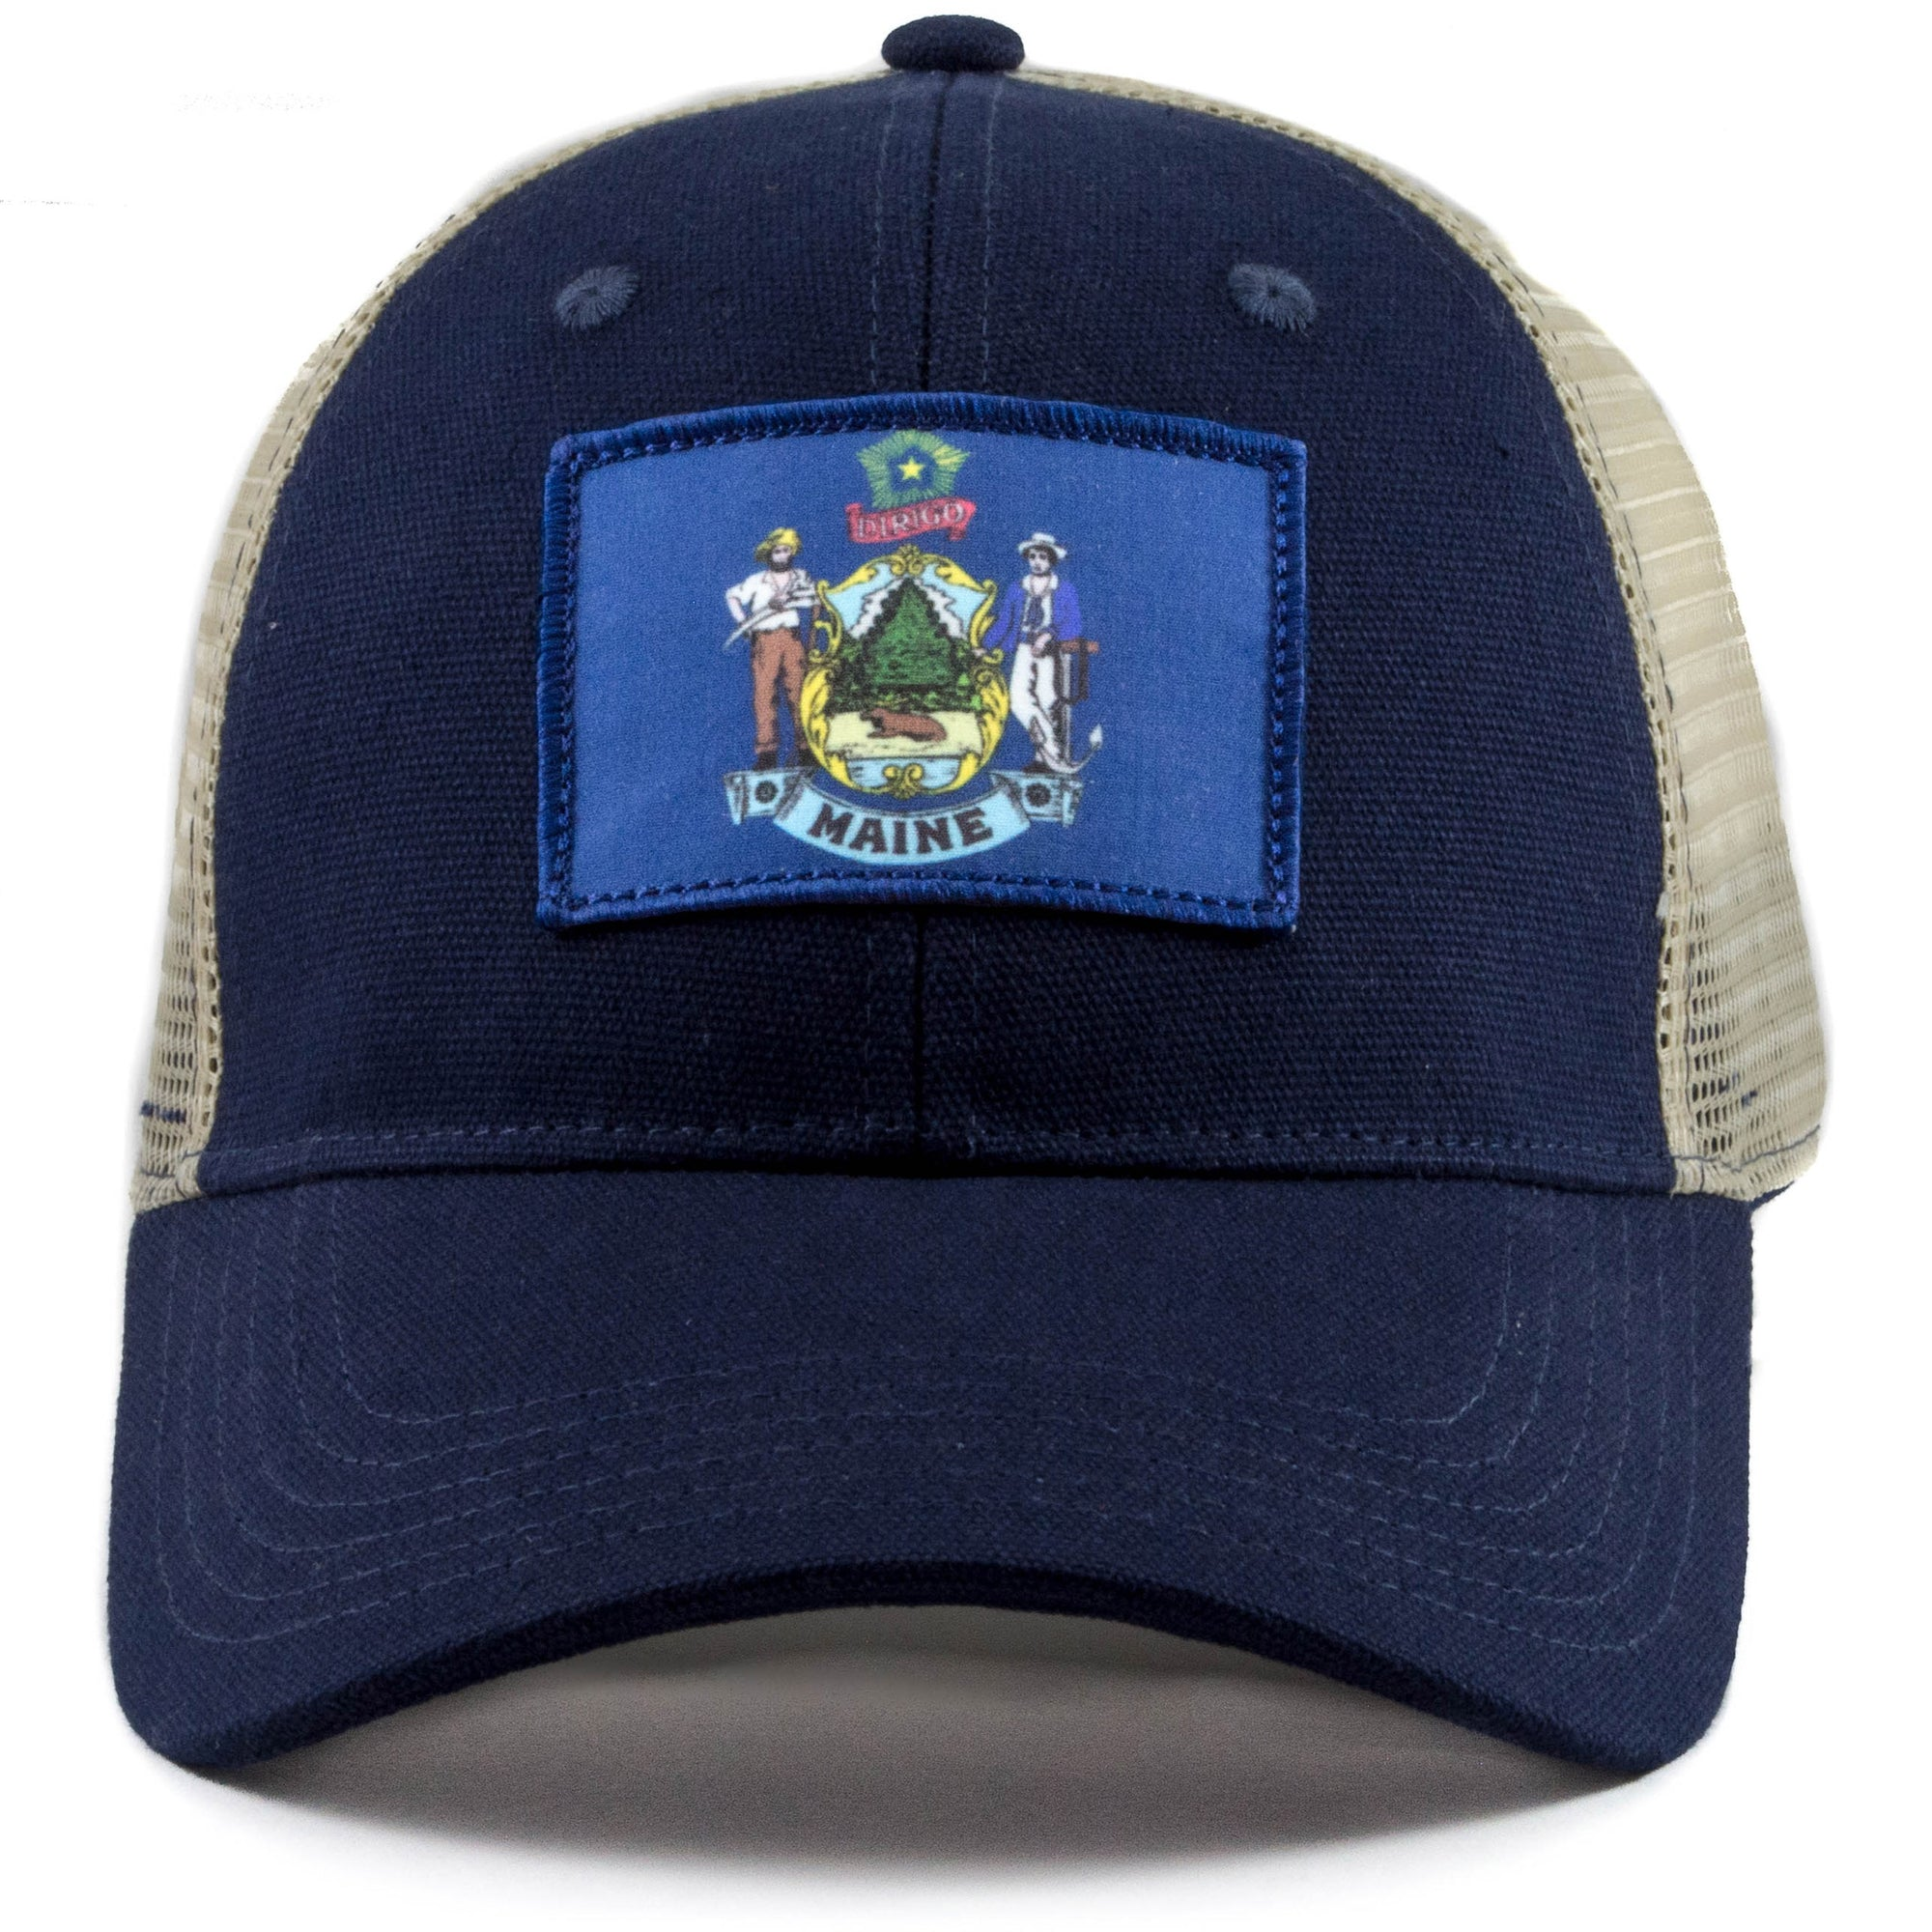 Maine flag trucker hat